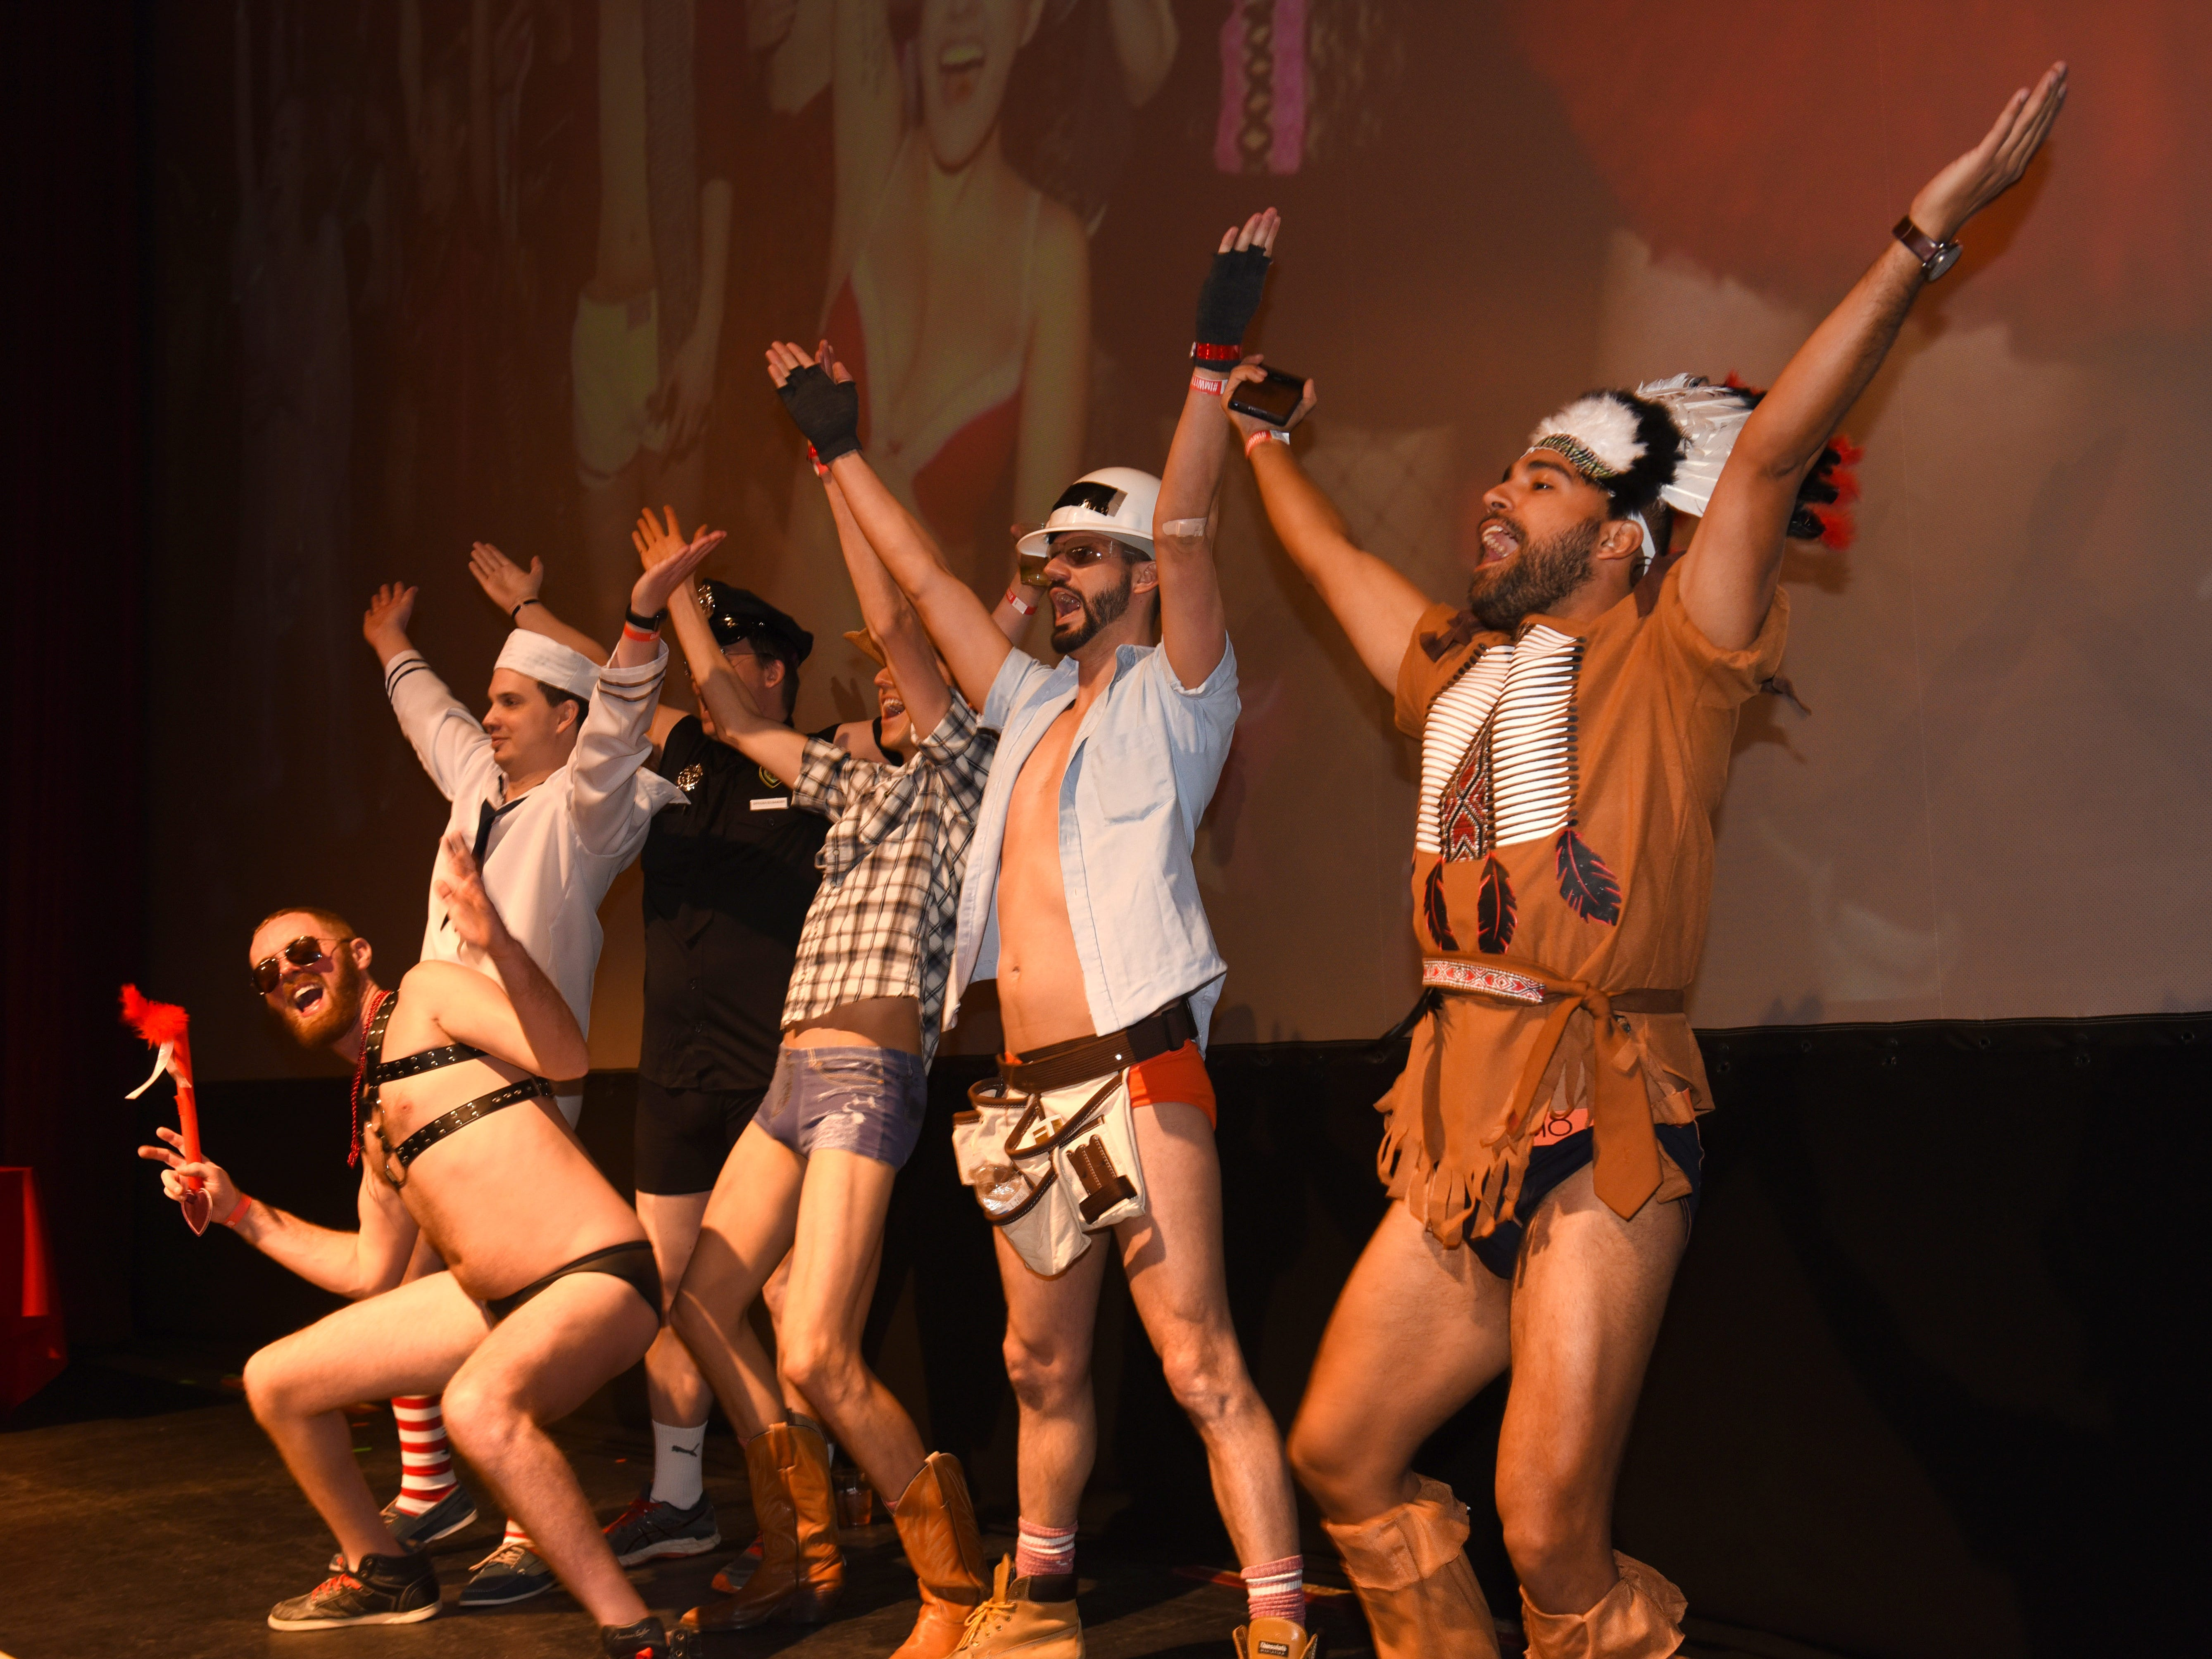 Participants dance to the Village People song Y.M.C.A  at The Fillmore Detroit for CupidÕs Undie Run.